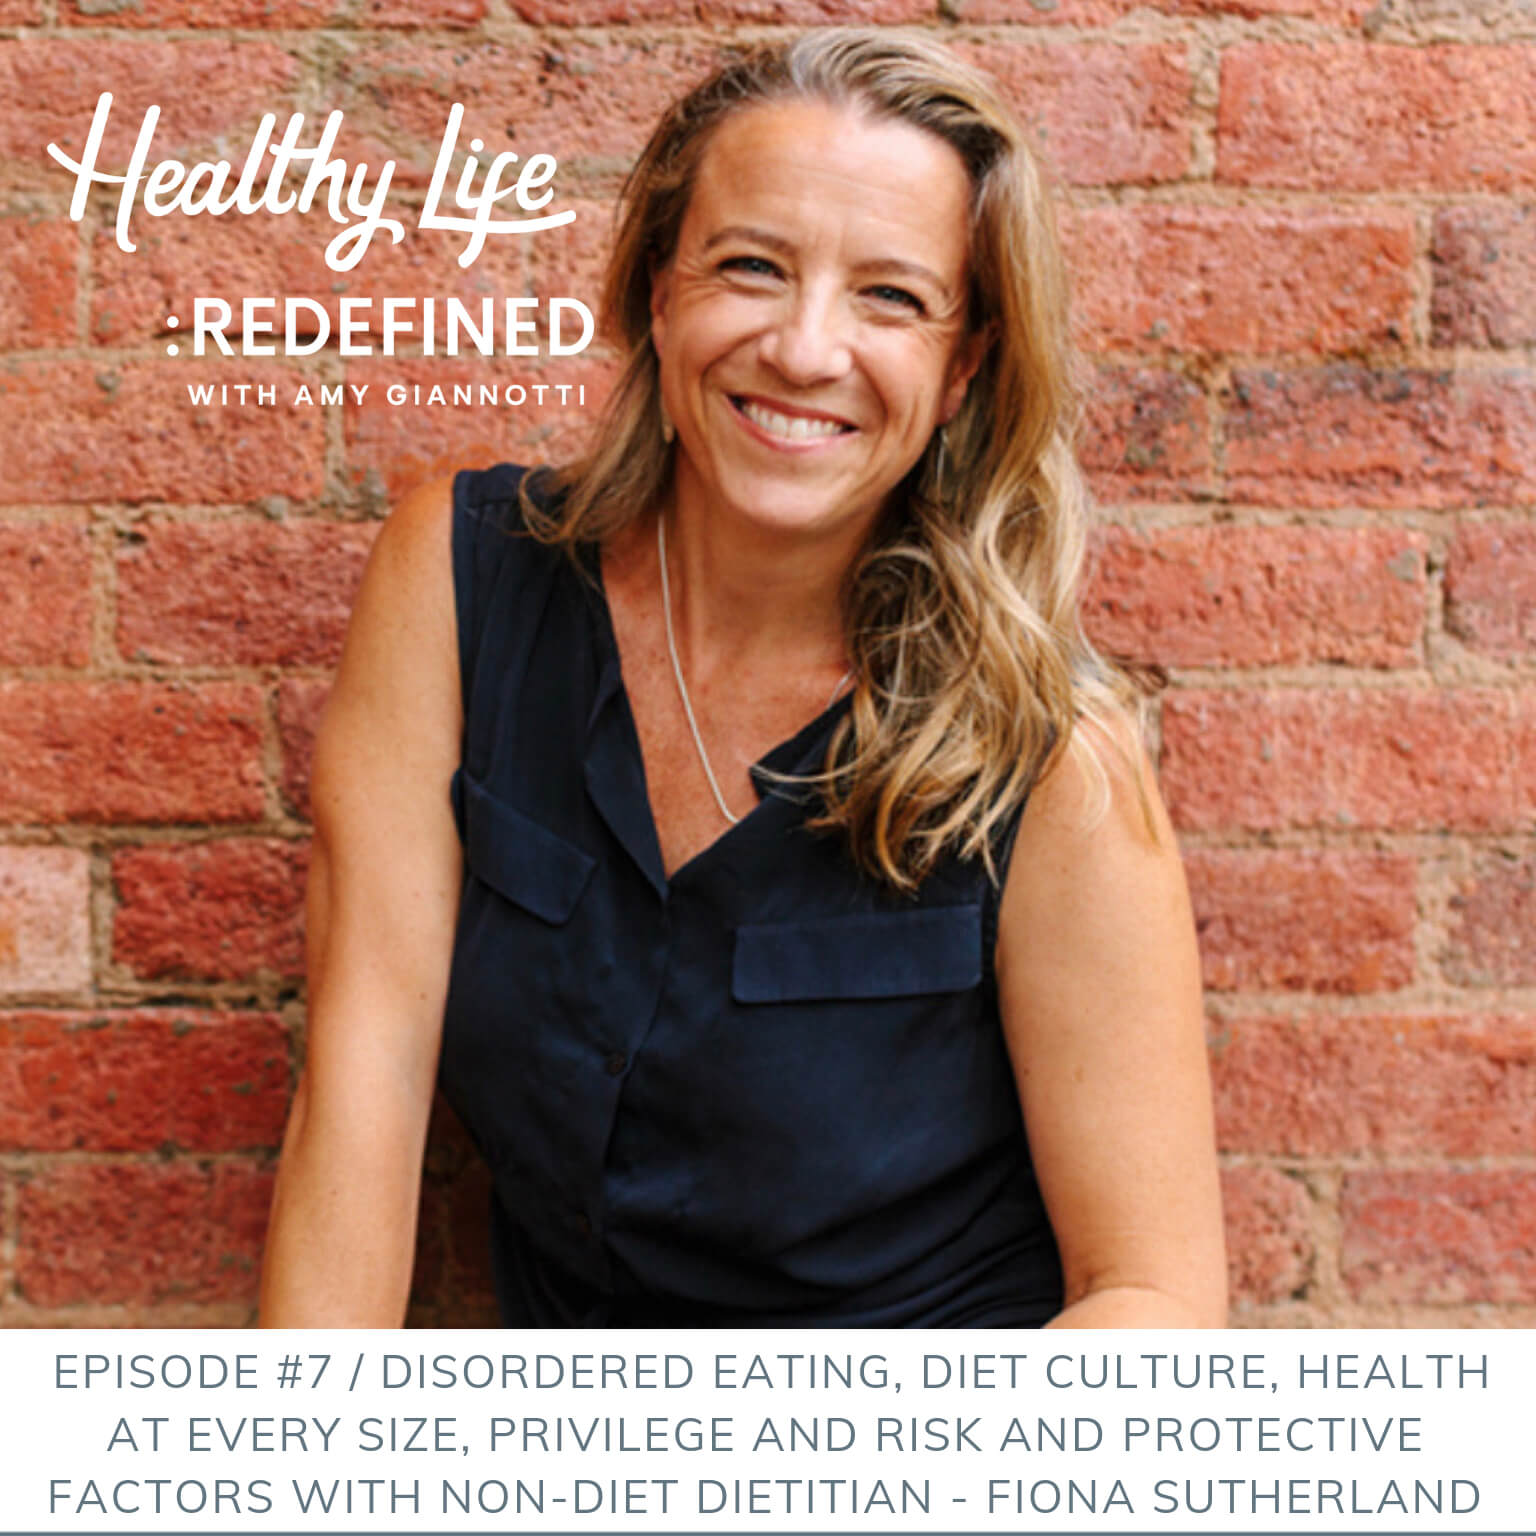 Podcast Episode 7: Disordered Eating, Diet Culture, Health at Every Size, Privilege and Risk and Protective Factors With Non-Diet Dietitian Fiona Sutherland